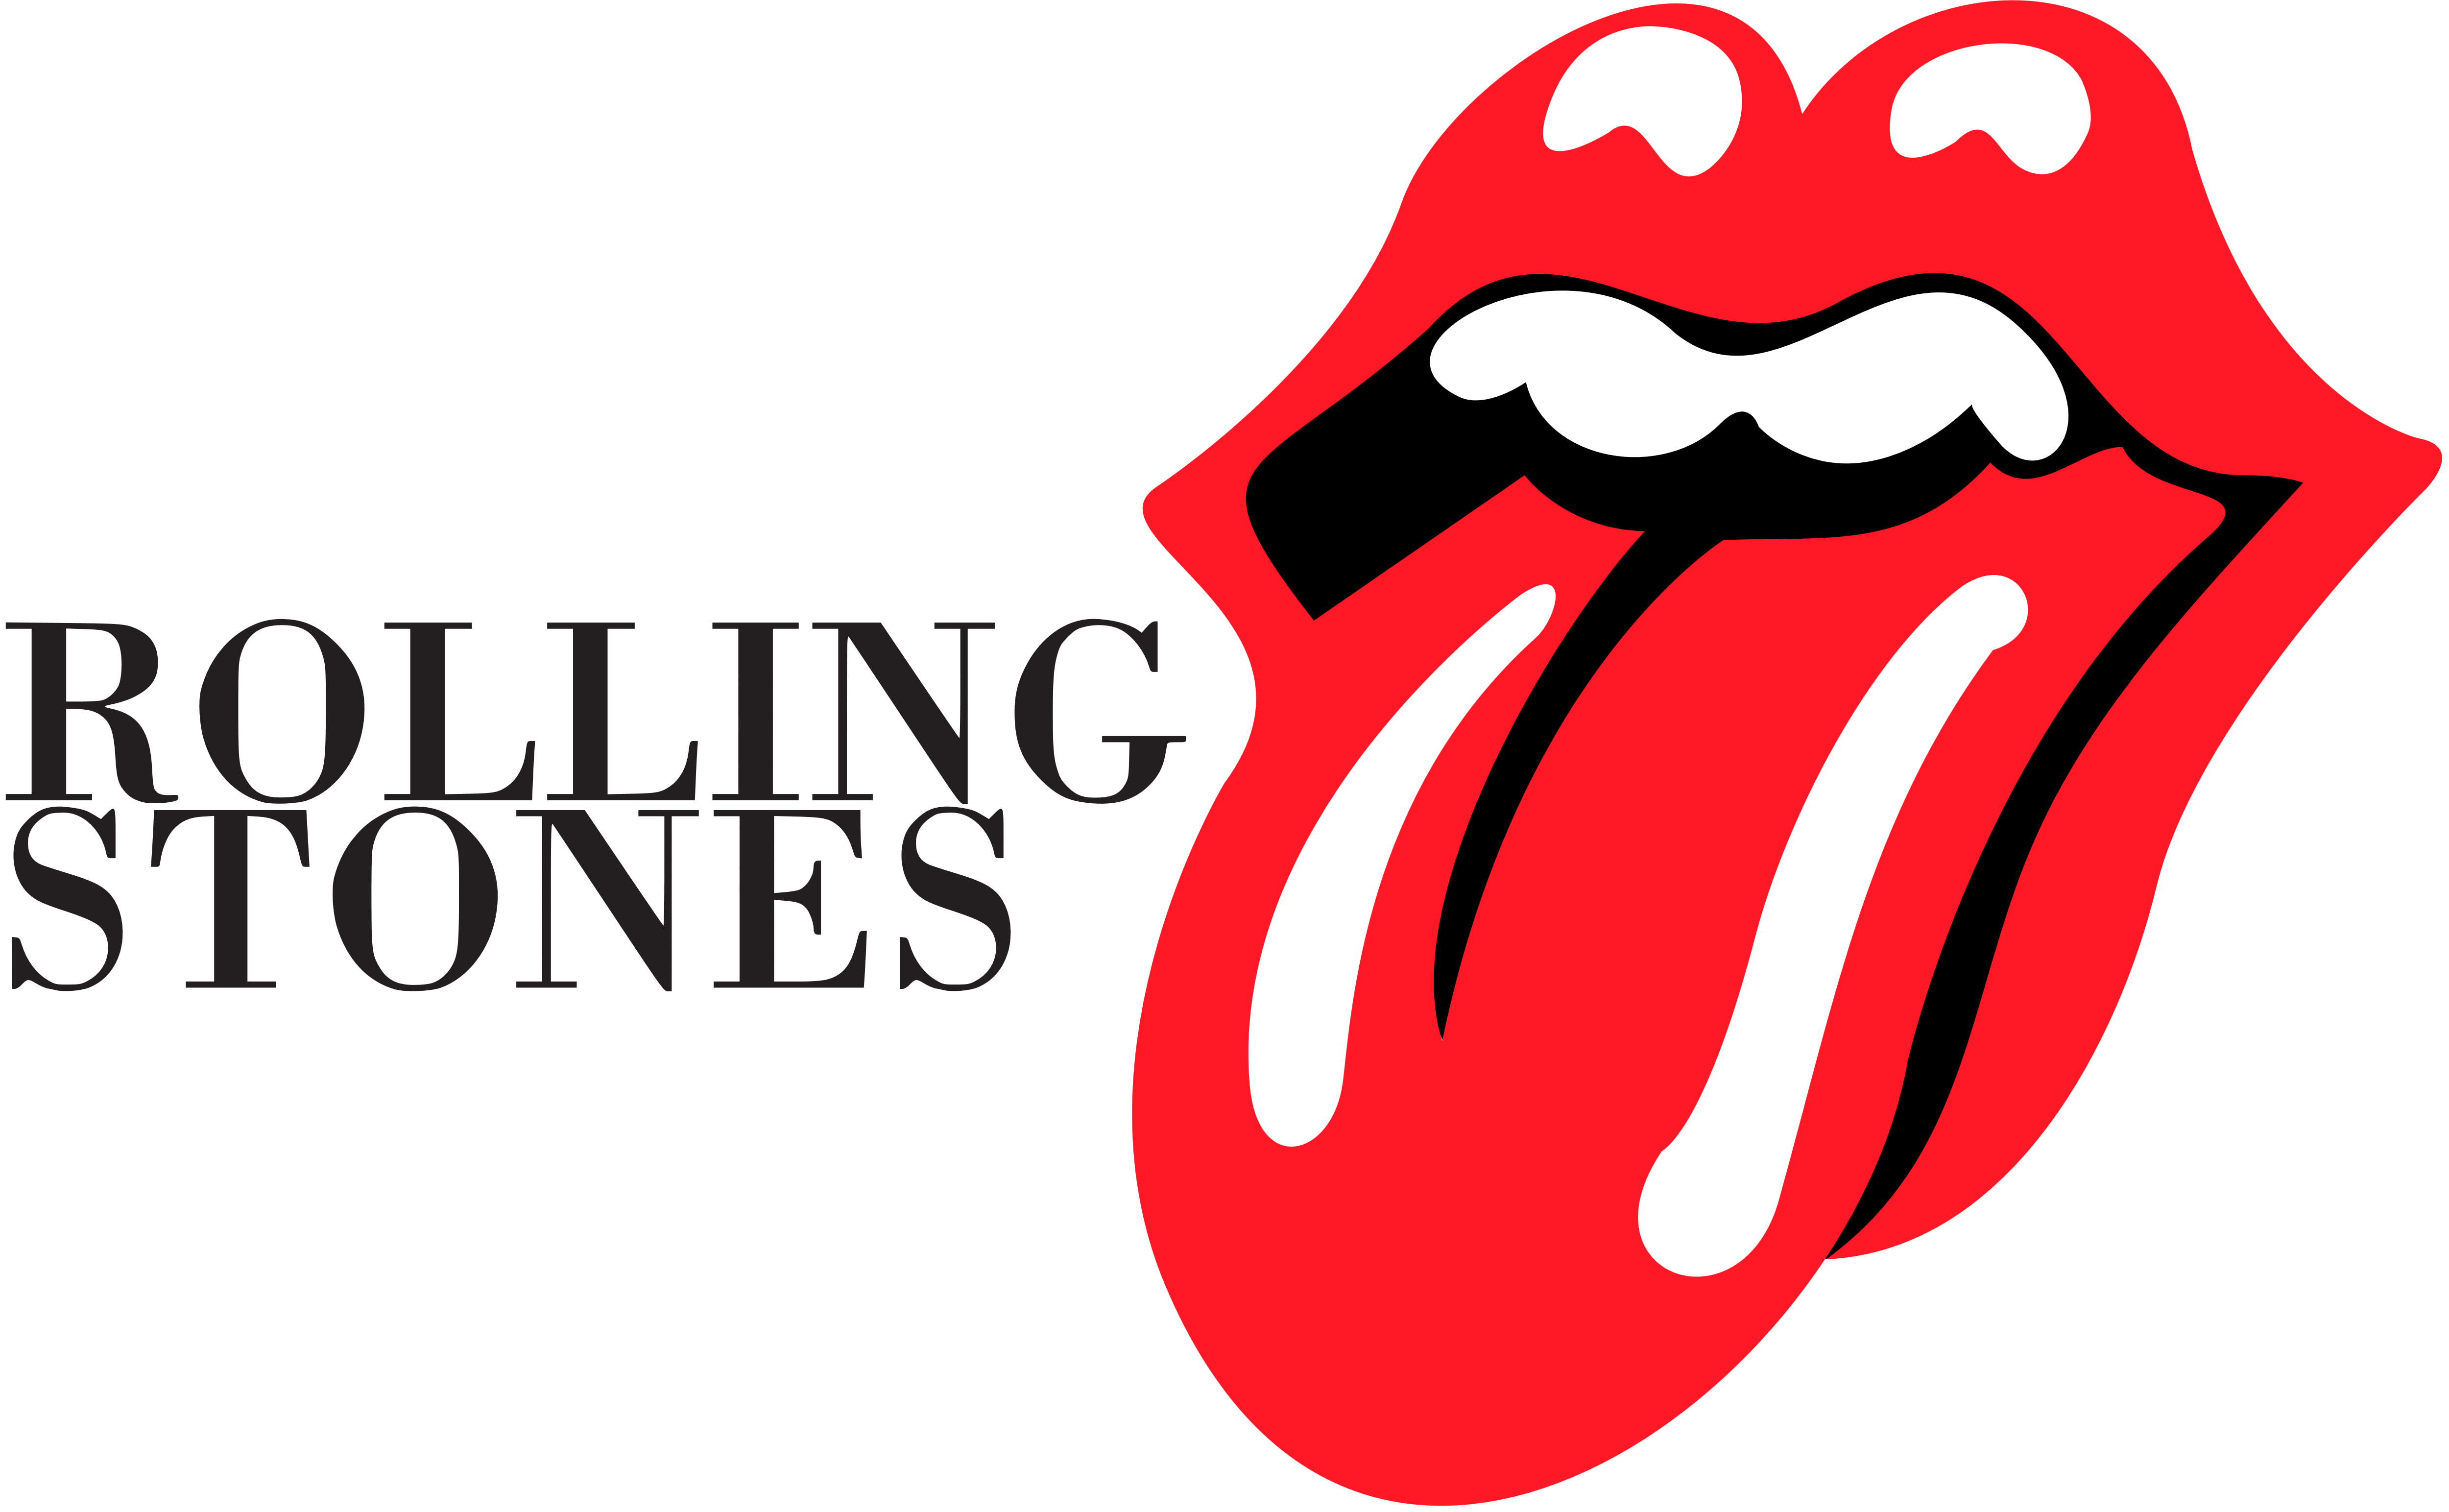 the rolling stones � logos download